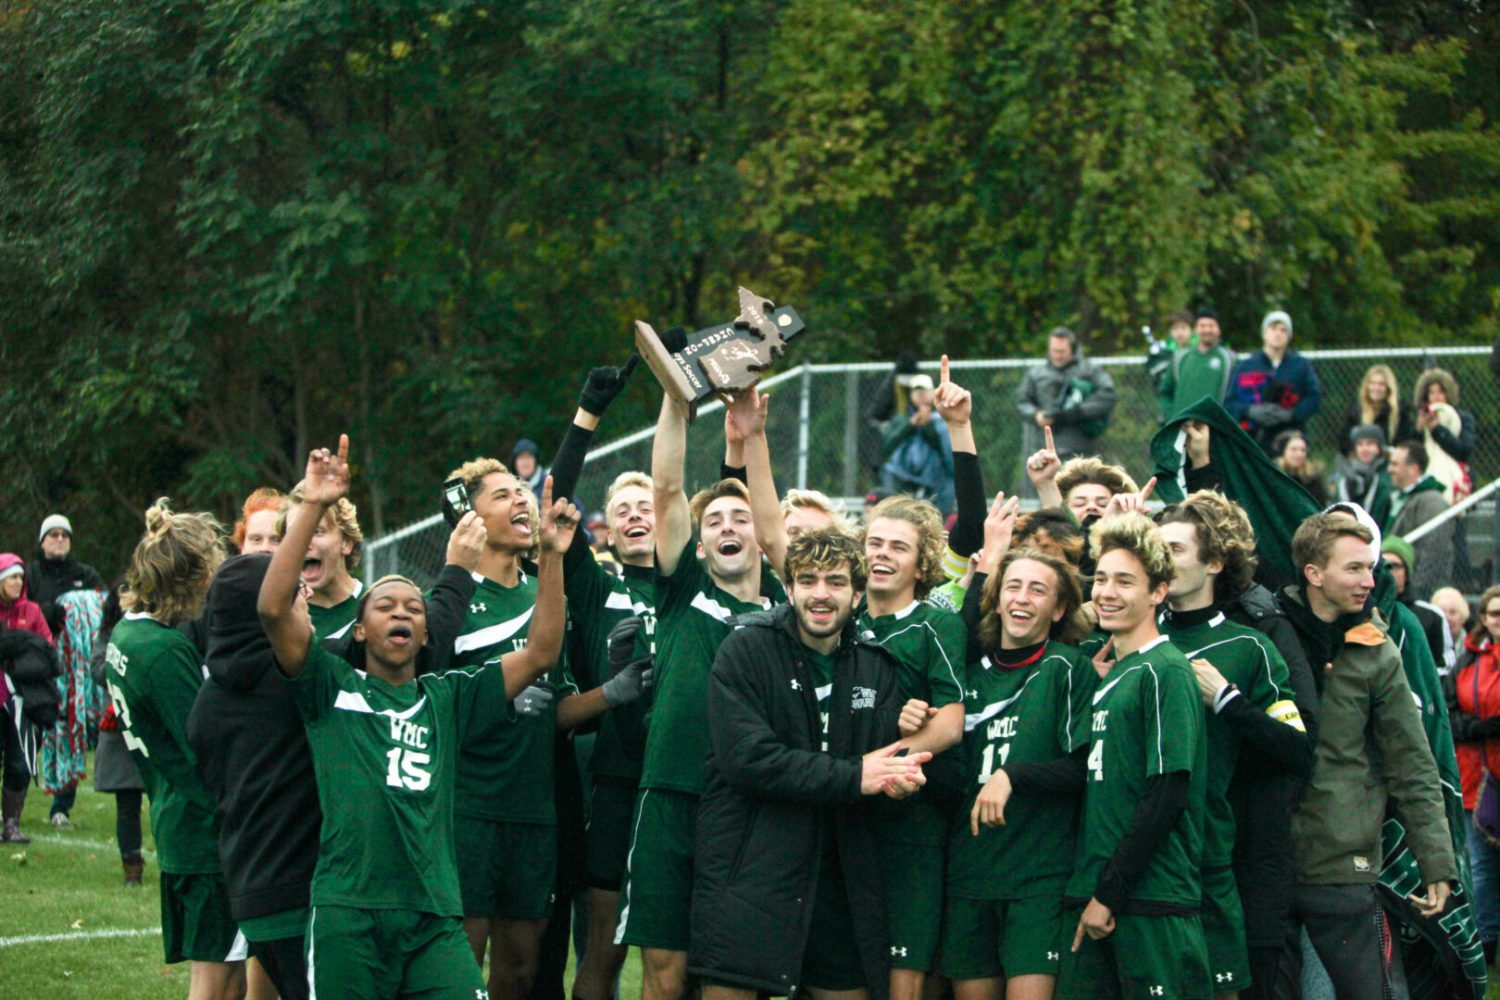 WMC claims another district soccer championship, prepares for push for state